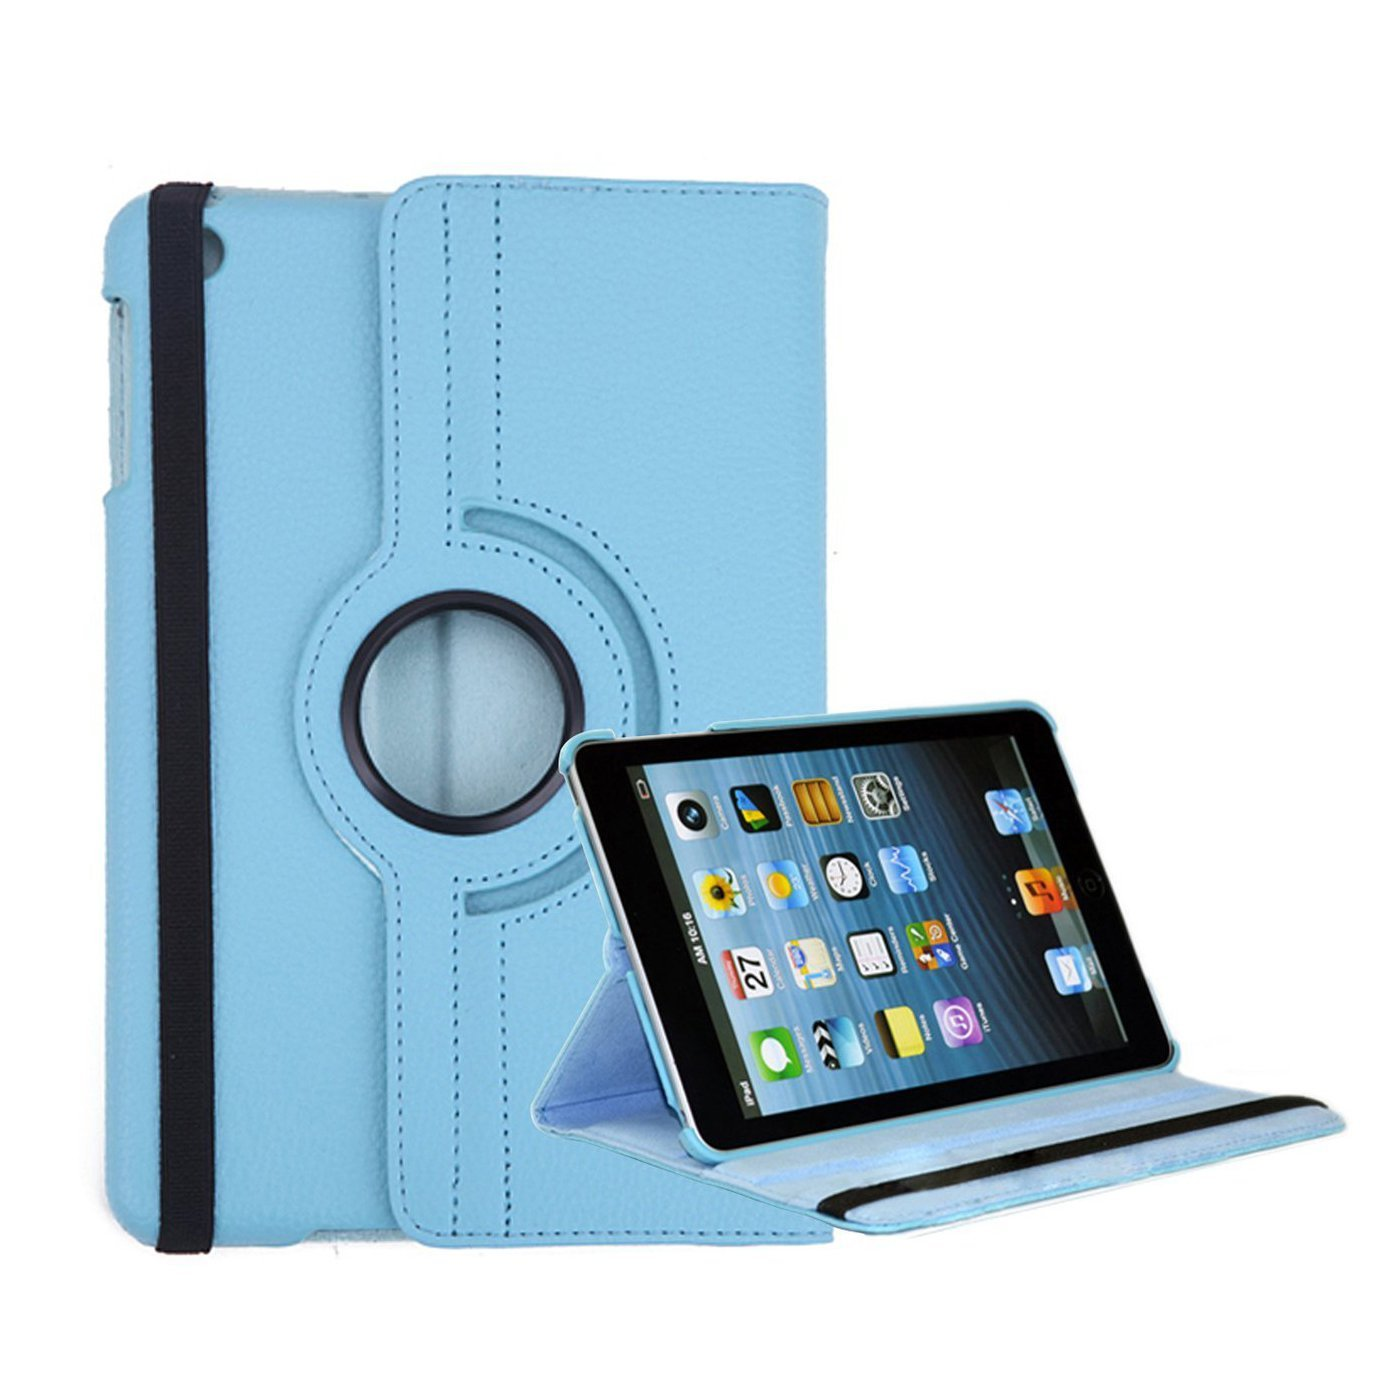 10 Best iPad Pro Cases That You Should Consider